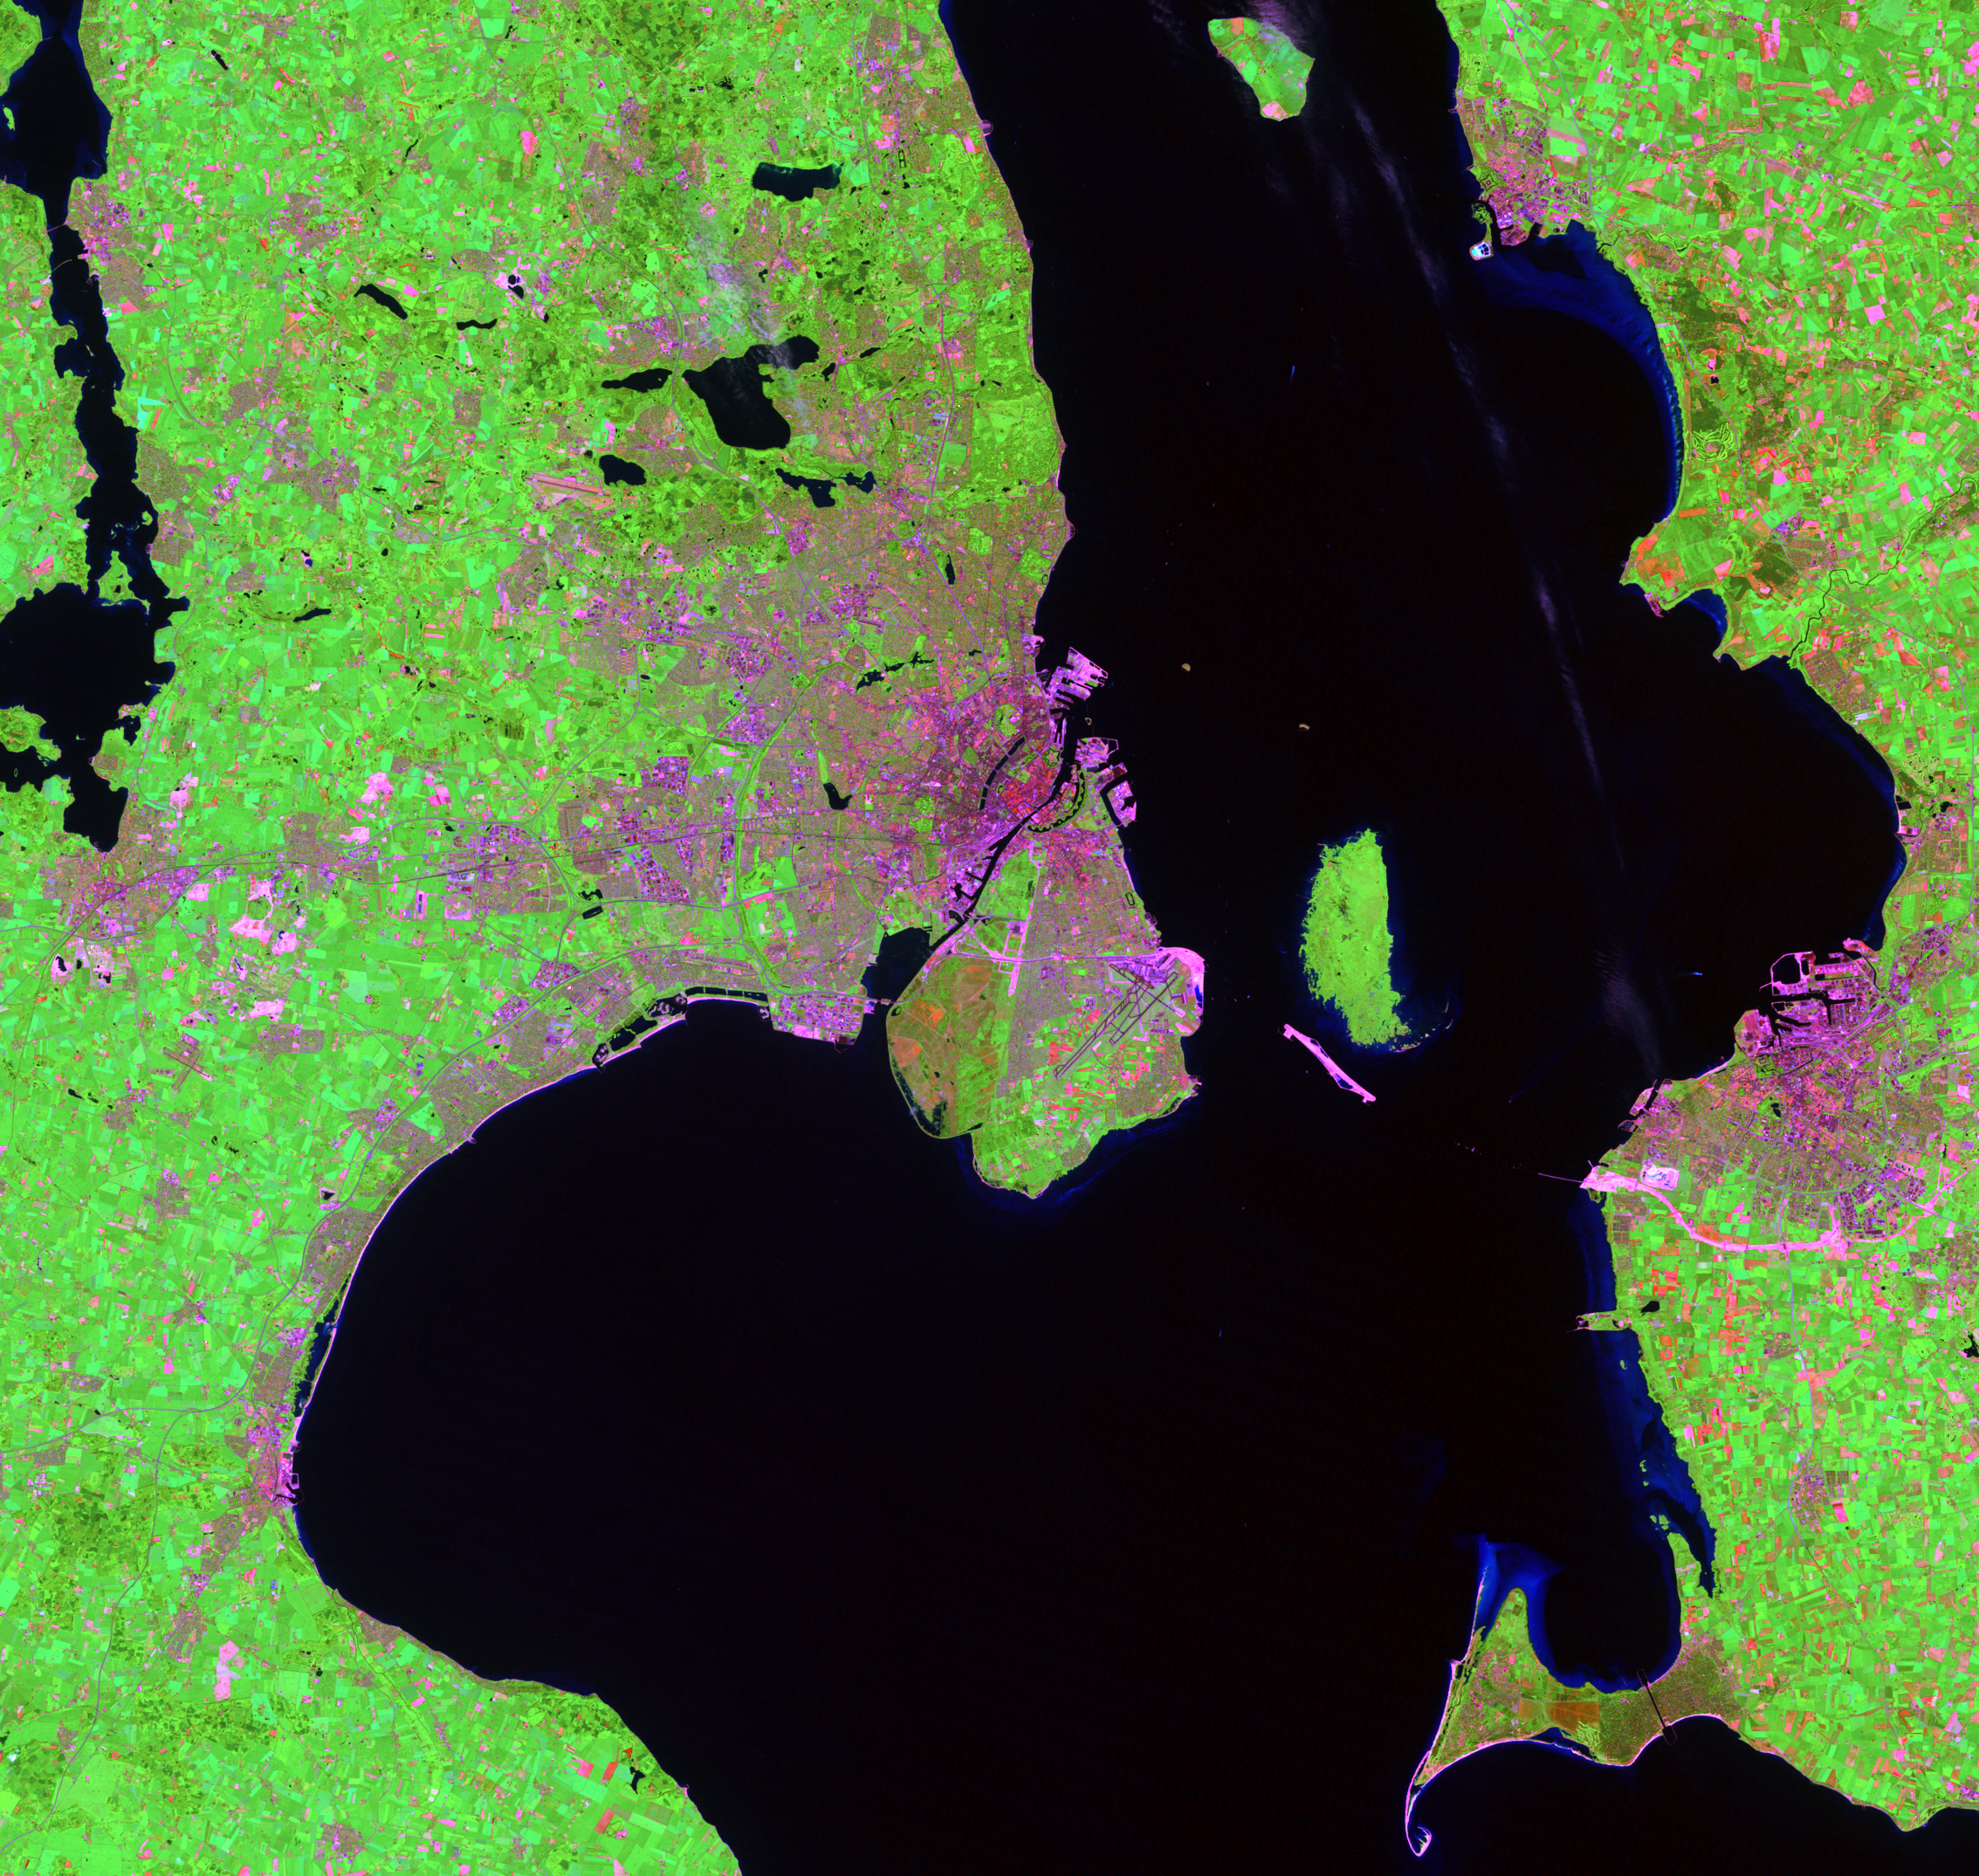 June 21, 1998, Landsat 5 (path/row 194/21) — Copenhagen, Denmark